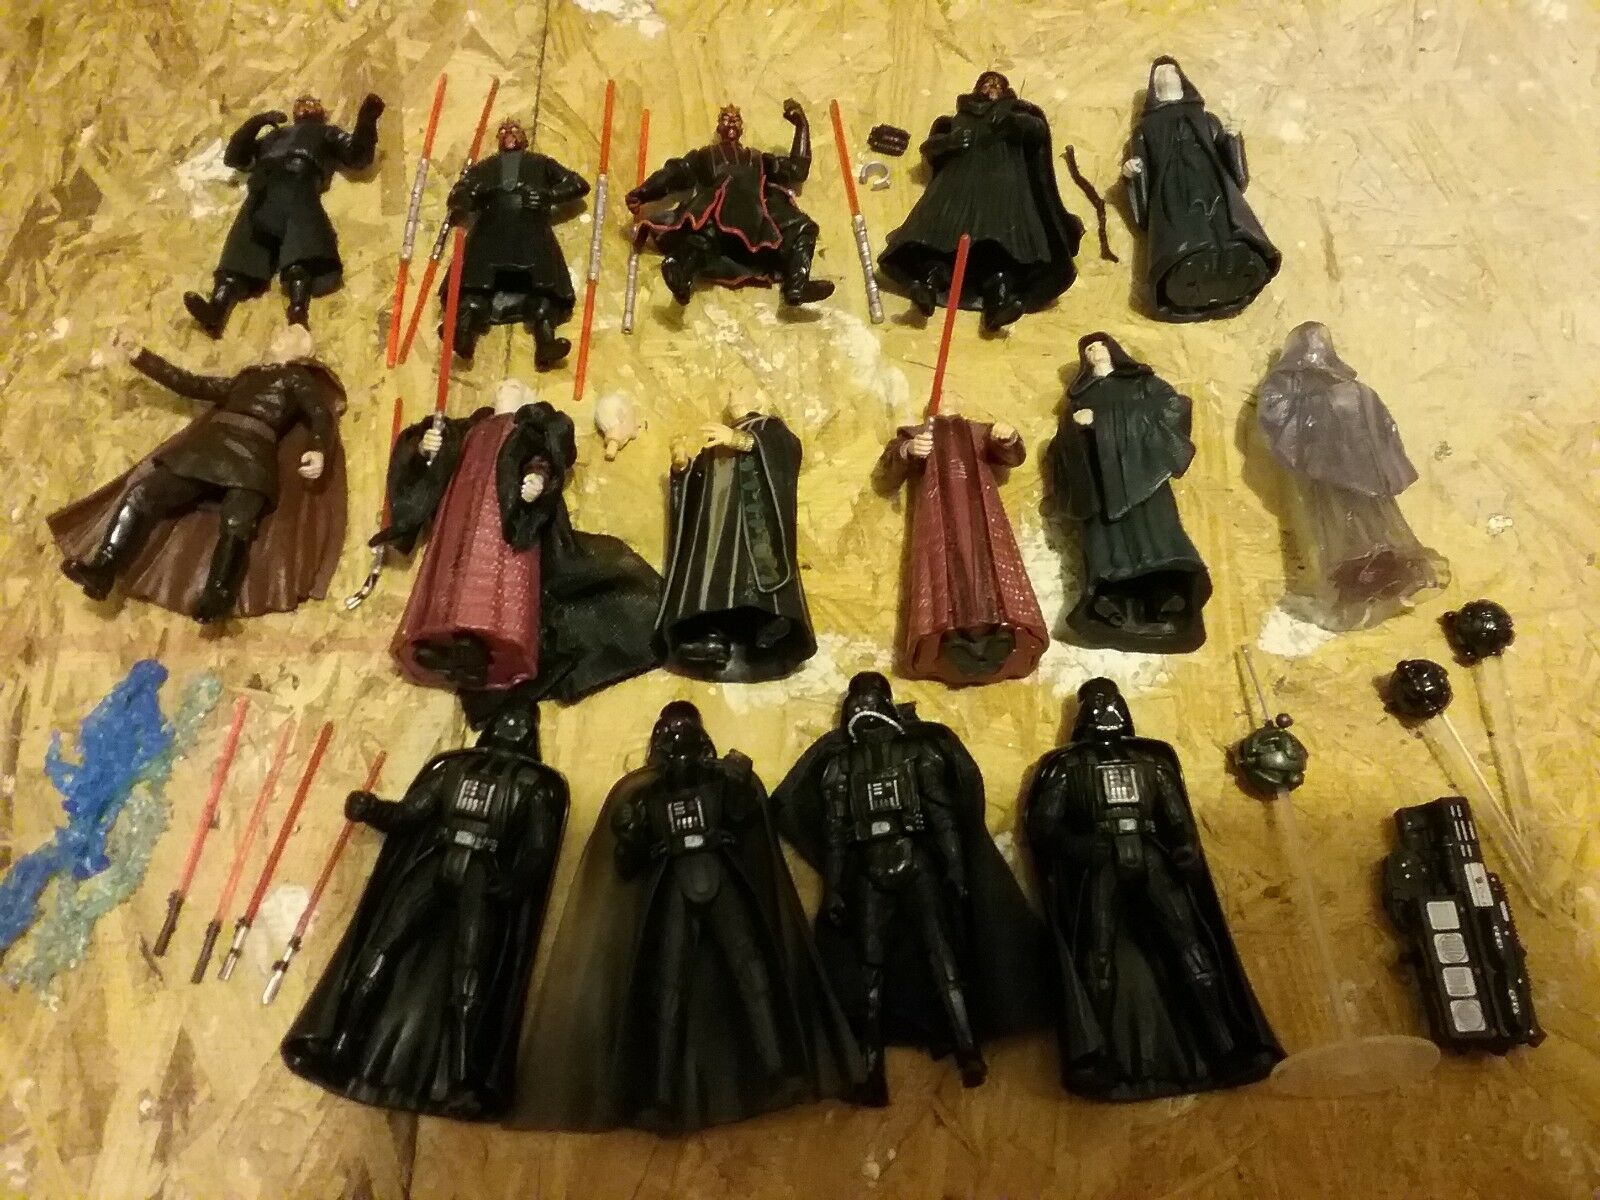 STAR WARS SITH LORDS ARISE- DARTH MAUL, SIDIOUS, TYRANNUS, VADER, TONS